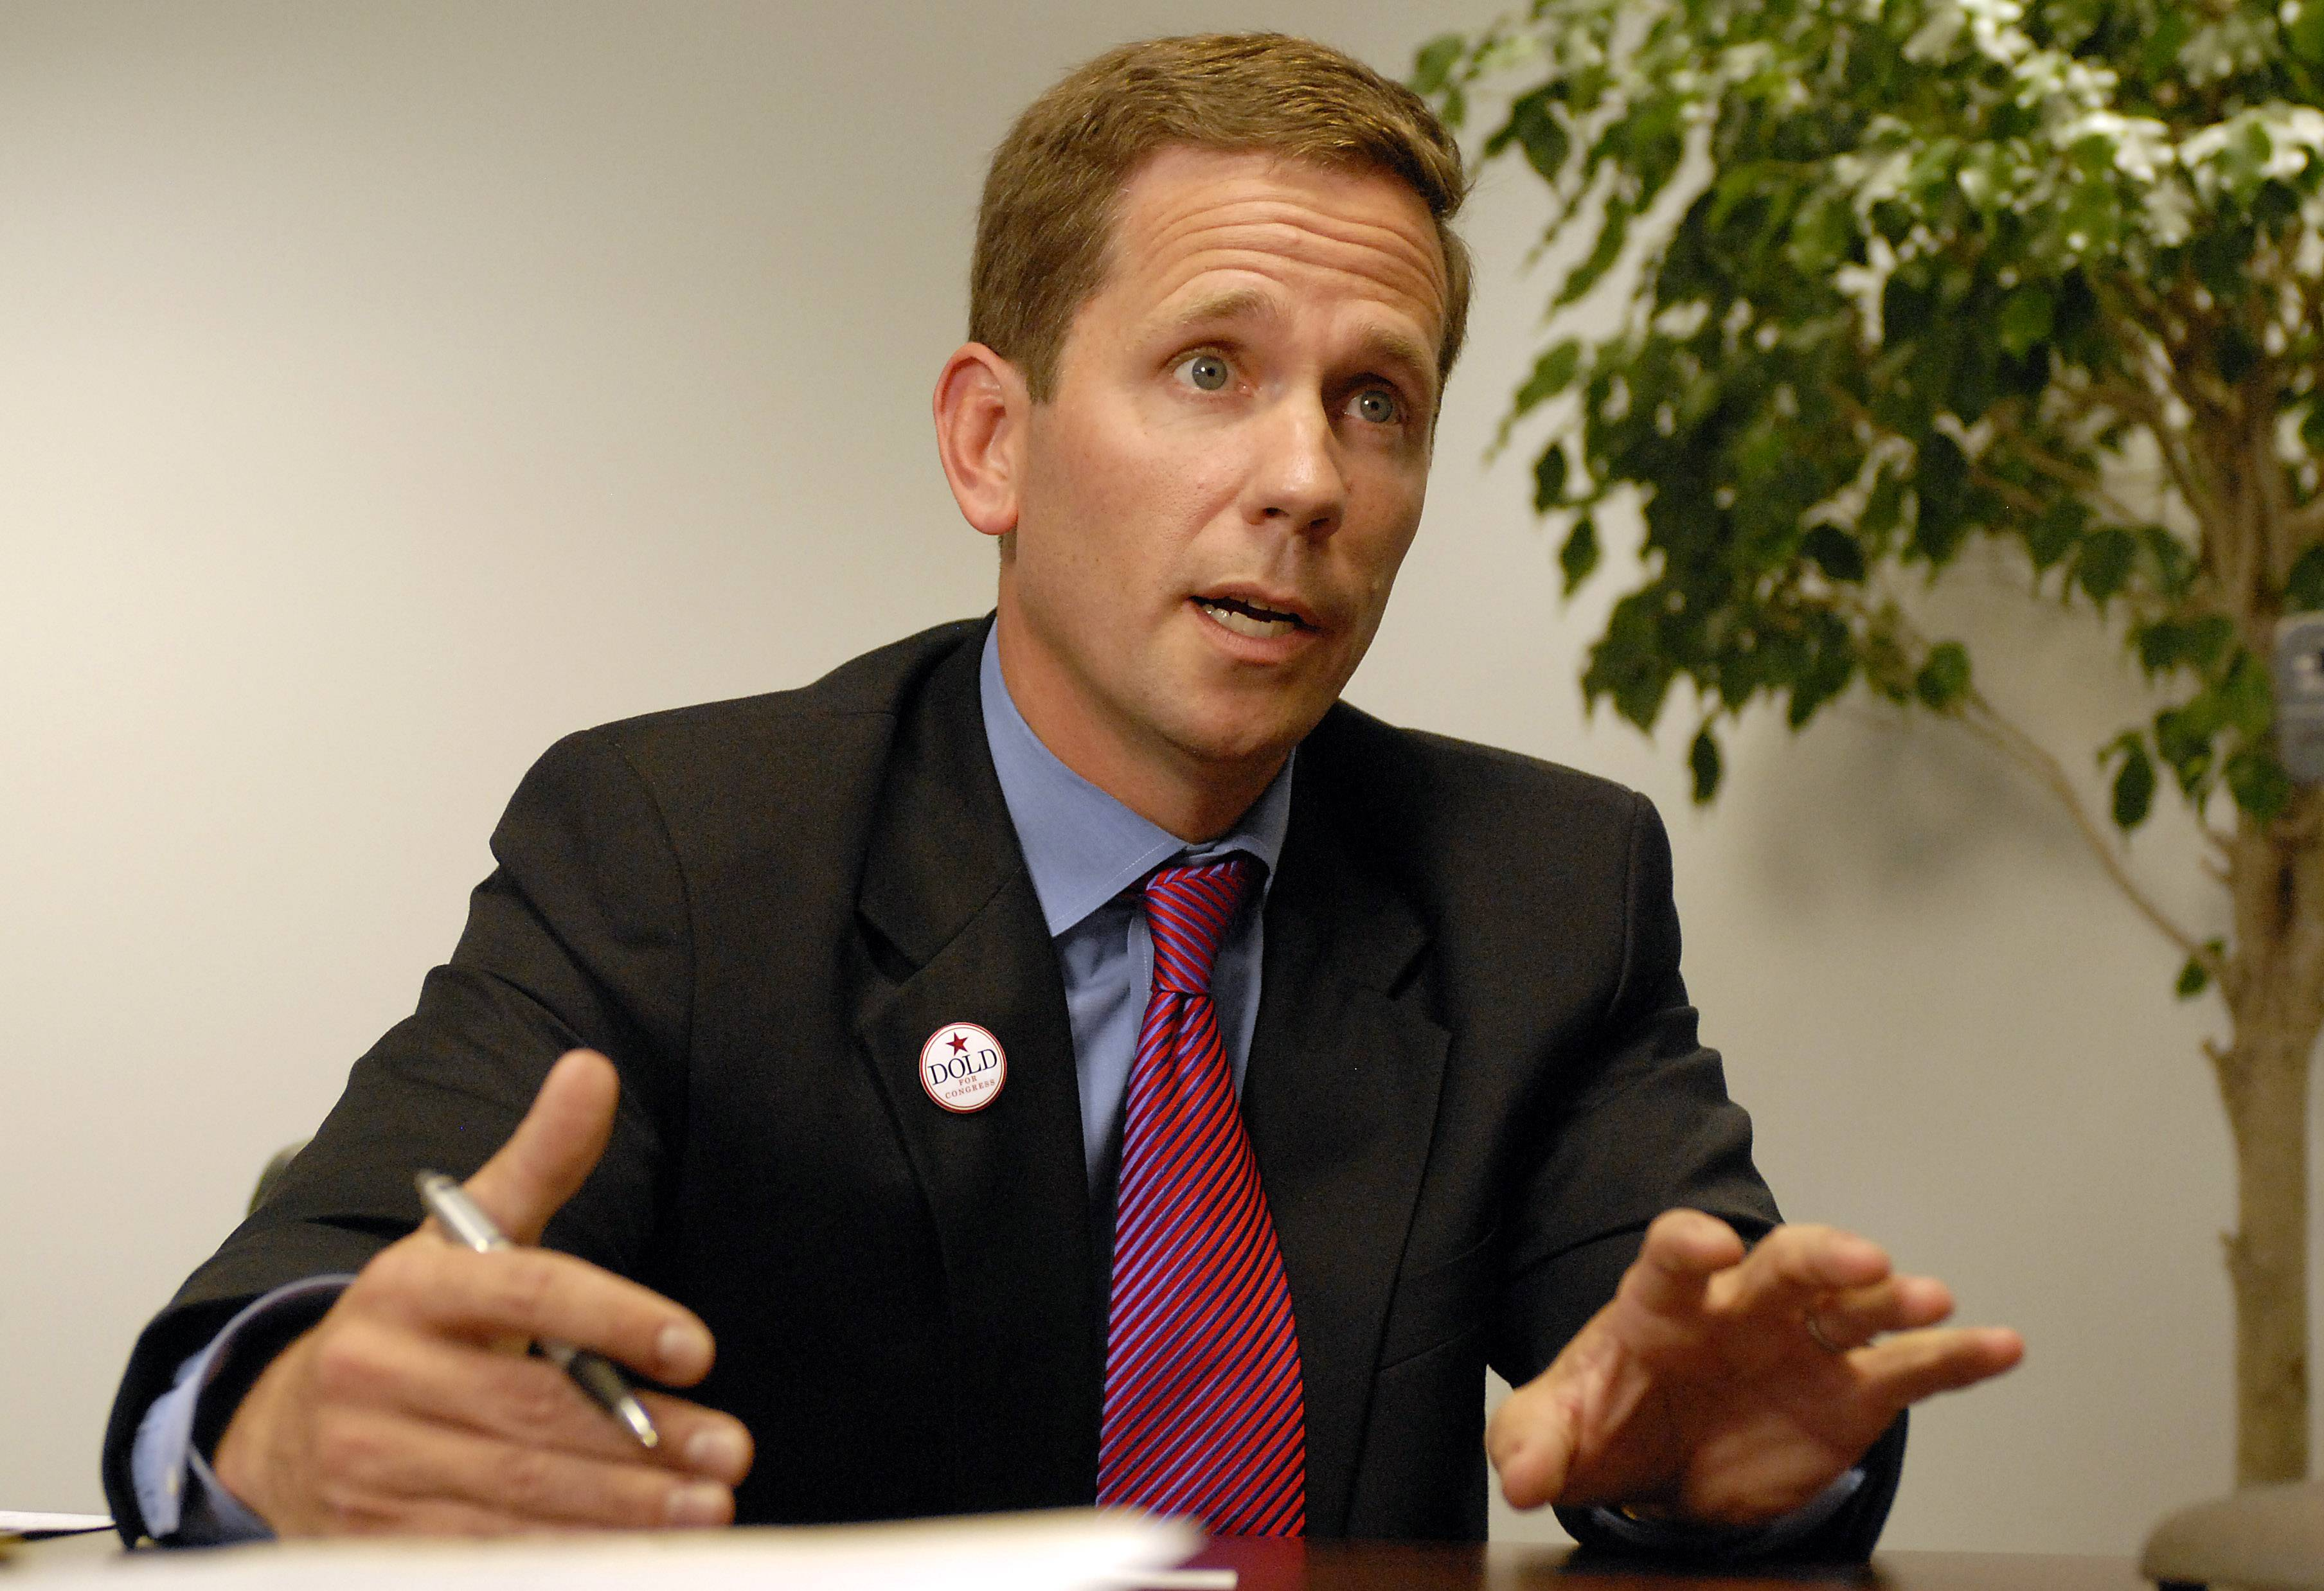 Riopell: Aaron Schock's loss is Bob Dold's win on Ways, Means Committee